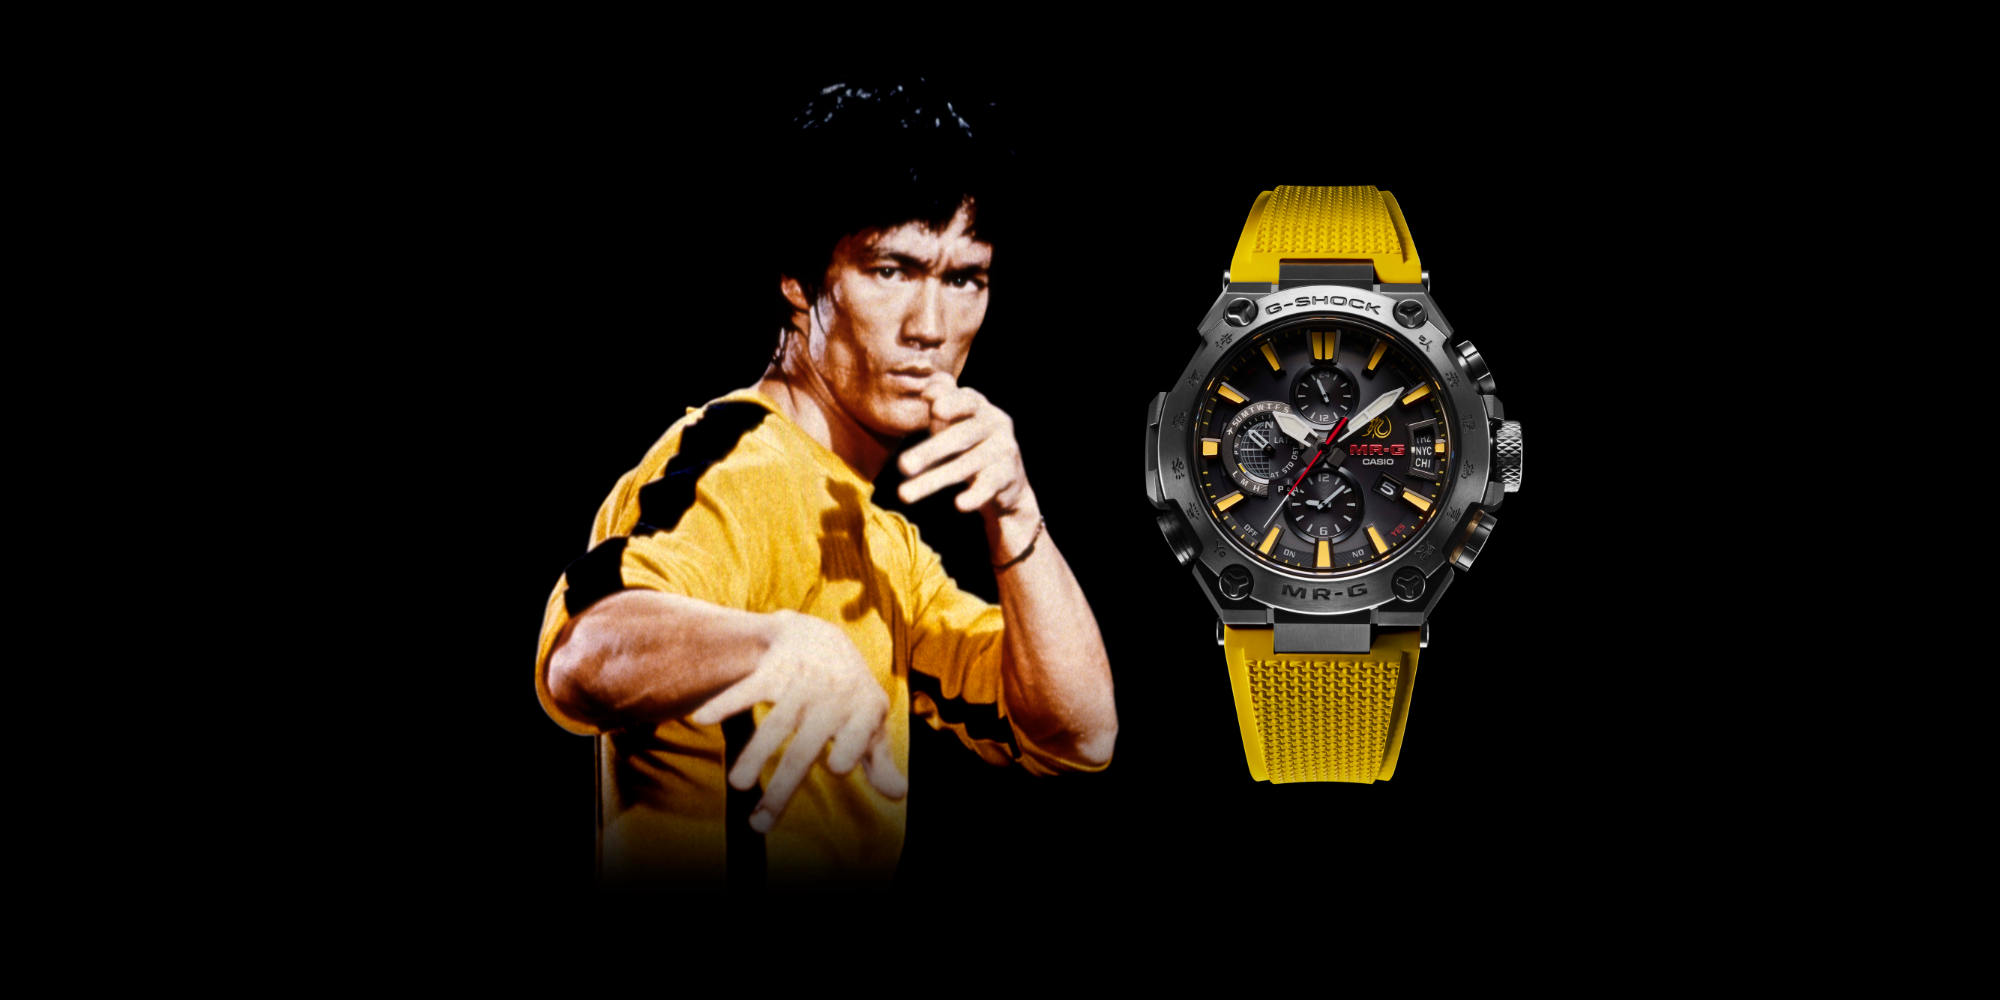 Bruce Lee G-Shock watch debuts with Bluetooth, solar, more - 9to5Toys